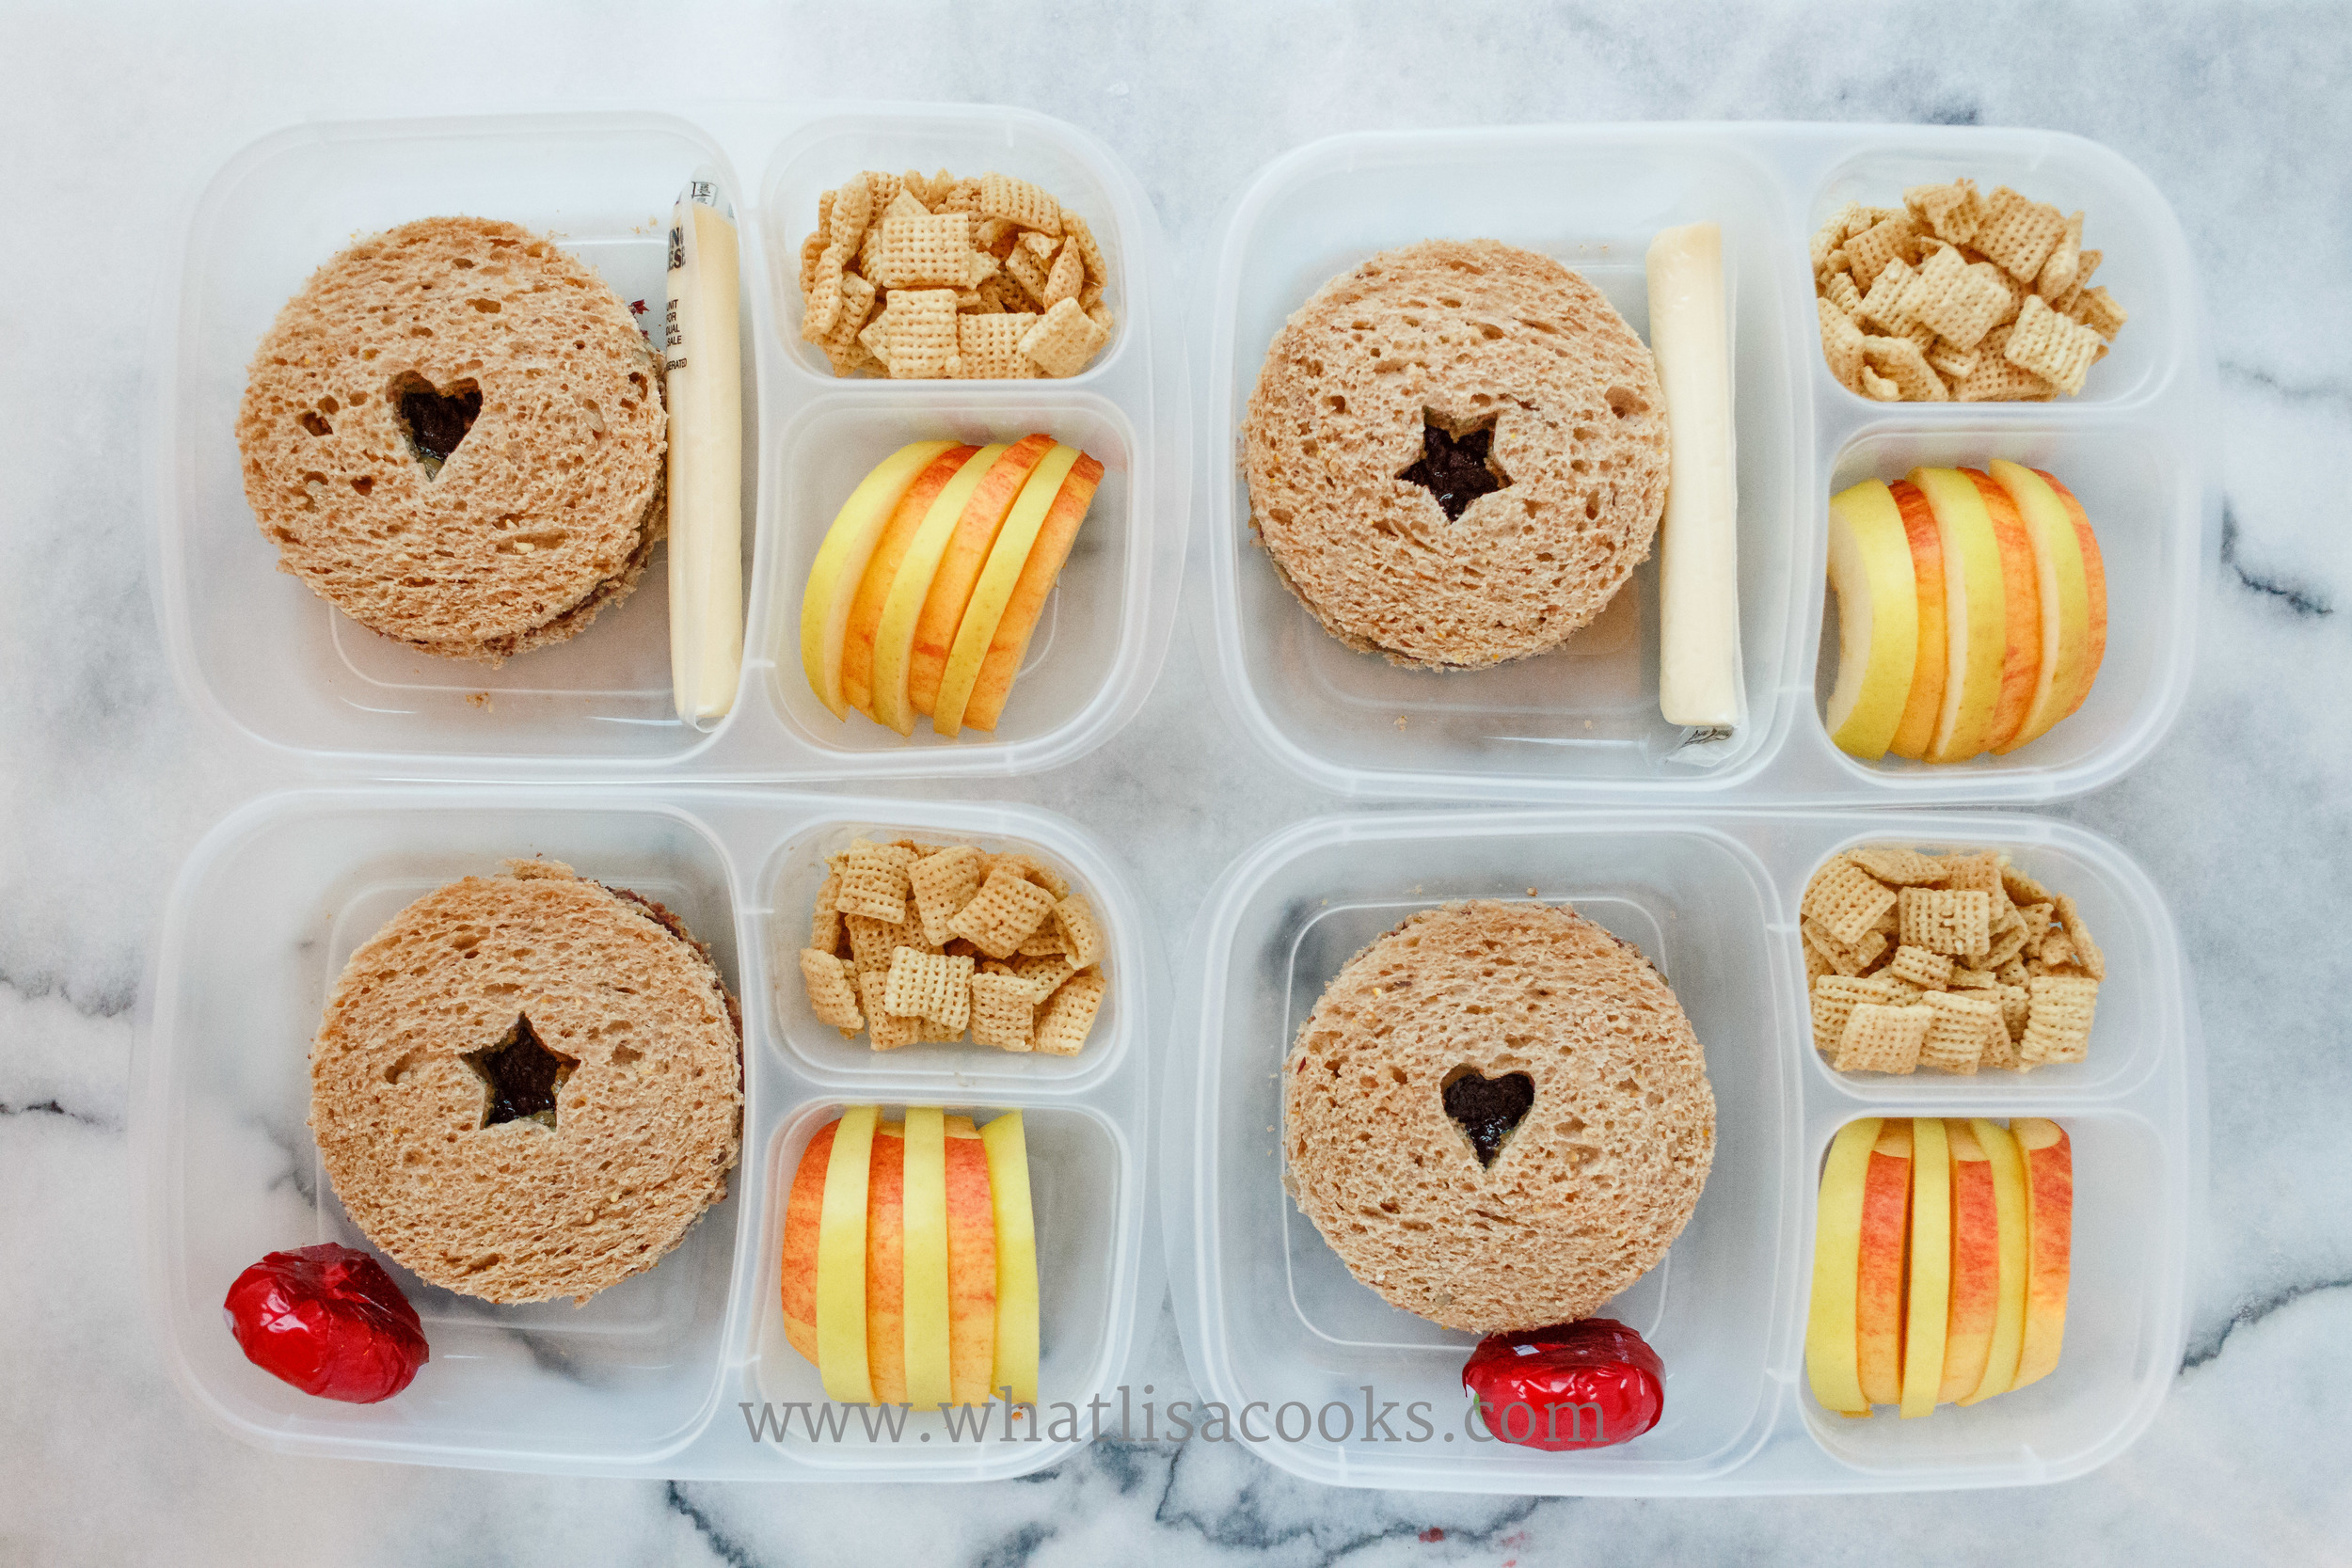 Sunbutter & jam sandwiches, cut in a circle with a little shape in the center.  A simple way to make lunch more fun.  With cheese, chex and apples on the side.  Two different apples, sliced and alternated.  The sandwich is cut with a  round biscuit cutter , and the shapes with some  mini cookie cutters .